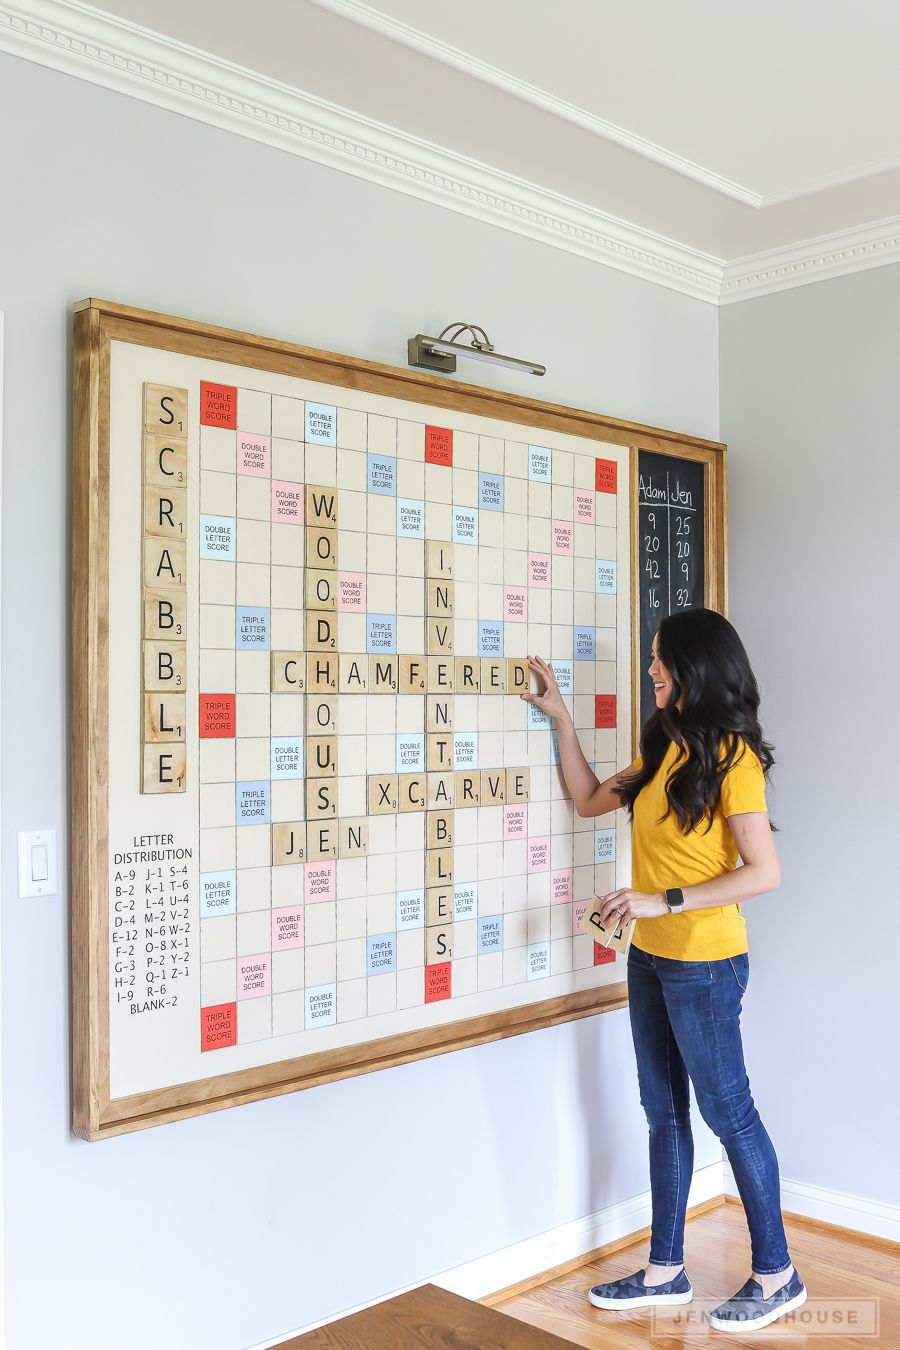 How To Make A DIY Giant Wall Scrabble Game Board is part of Scrabble game, Diy wall decor, Diy wall, Home diy, Scrabble board, Diy projects - Level up your game room with this DIY Giant WallMounted Scrabble Game Board  Full tutorial and plans on how to make this fun family game!